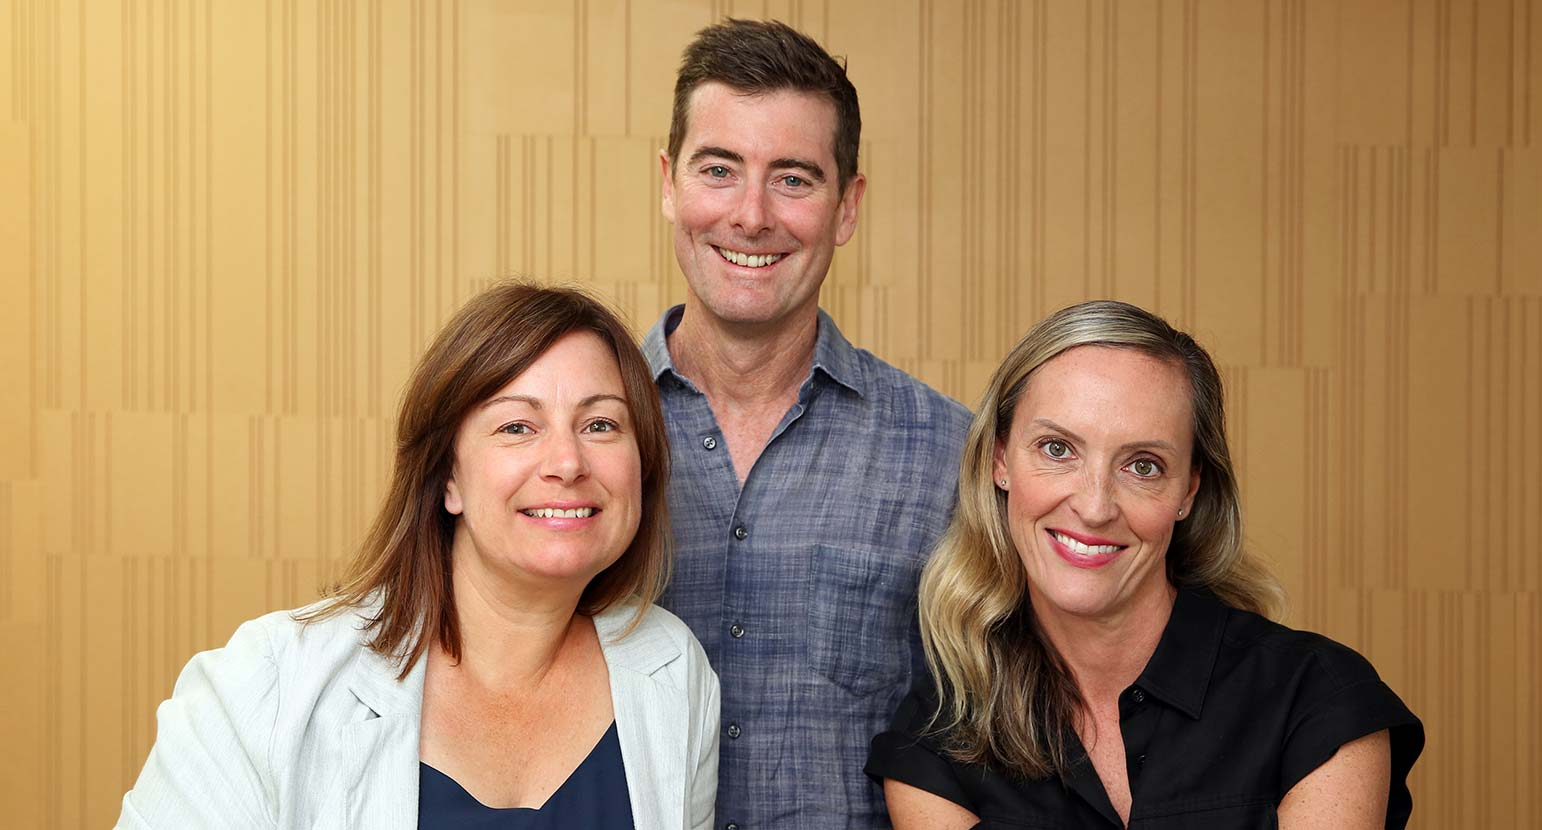 Rebecca Sargeant, Justin Groves and Penny Flanders. New staff members at Spinach advertising agency.